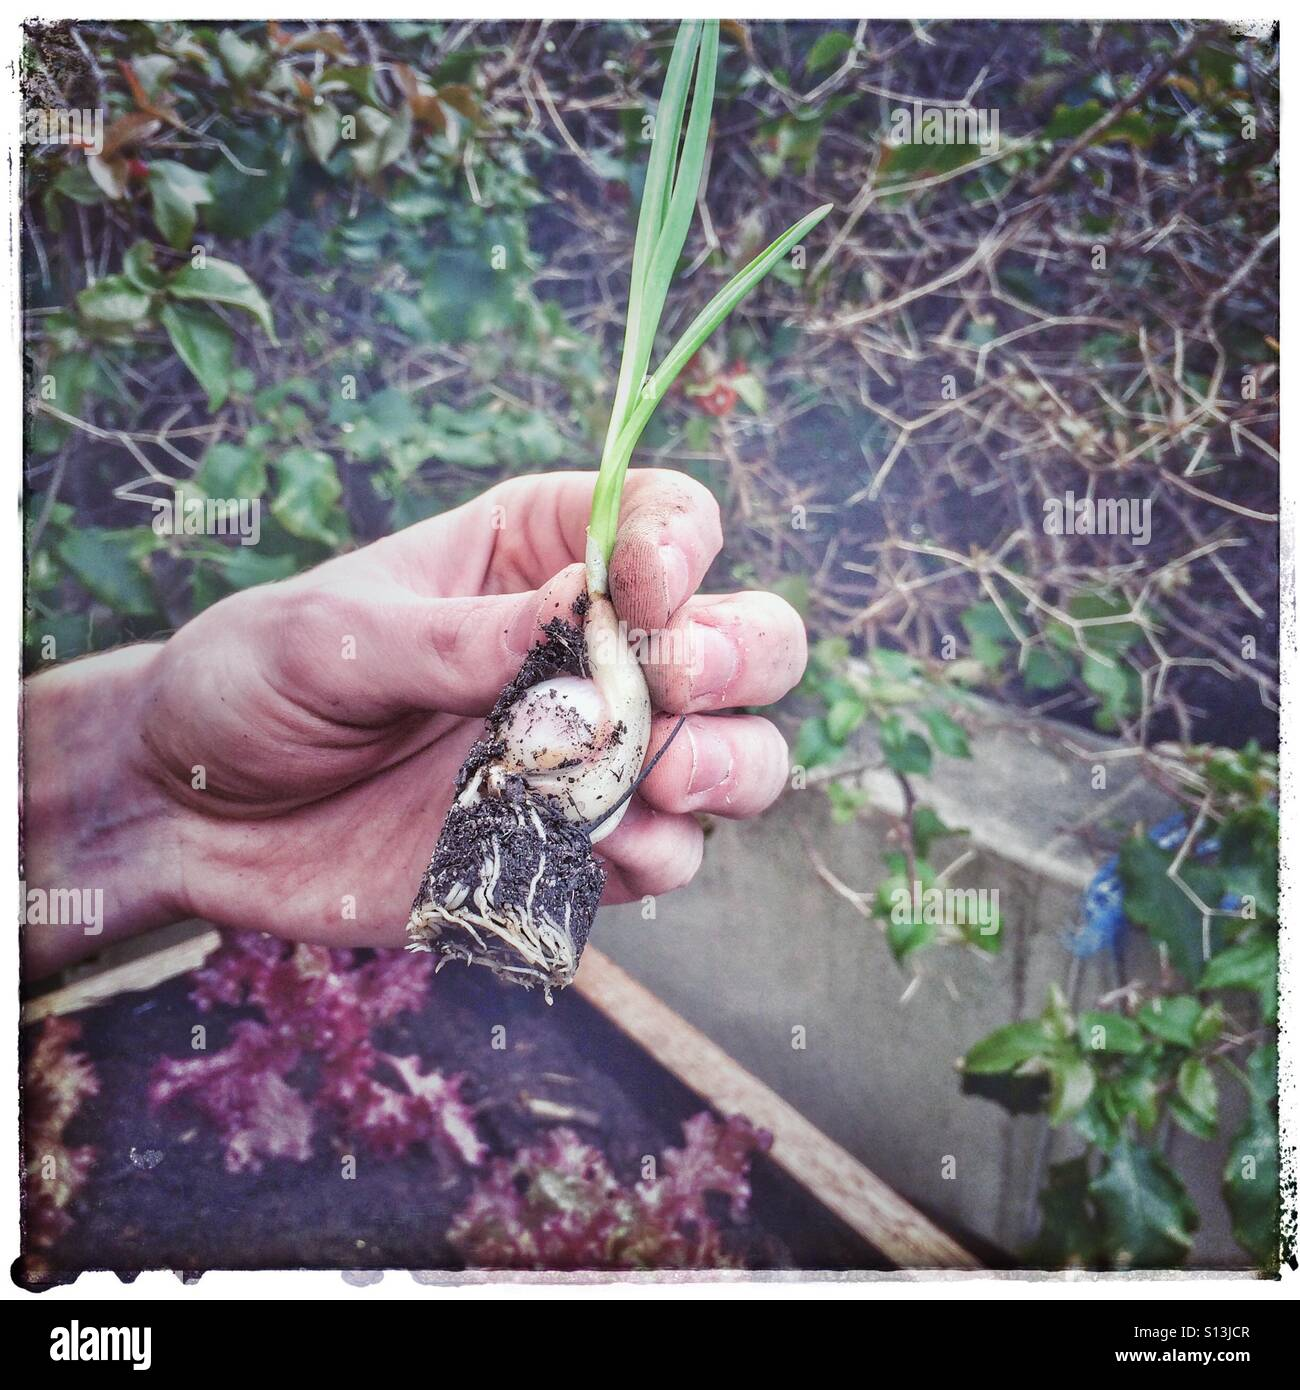 Garlic plant. - Stock Image